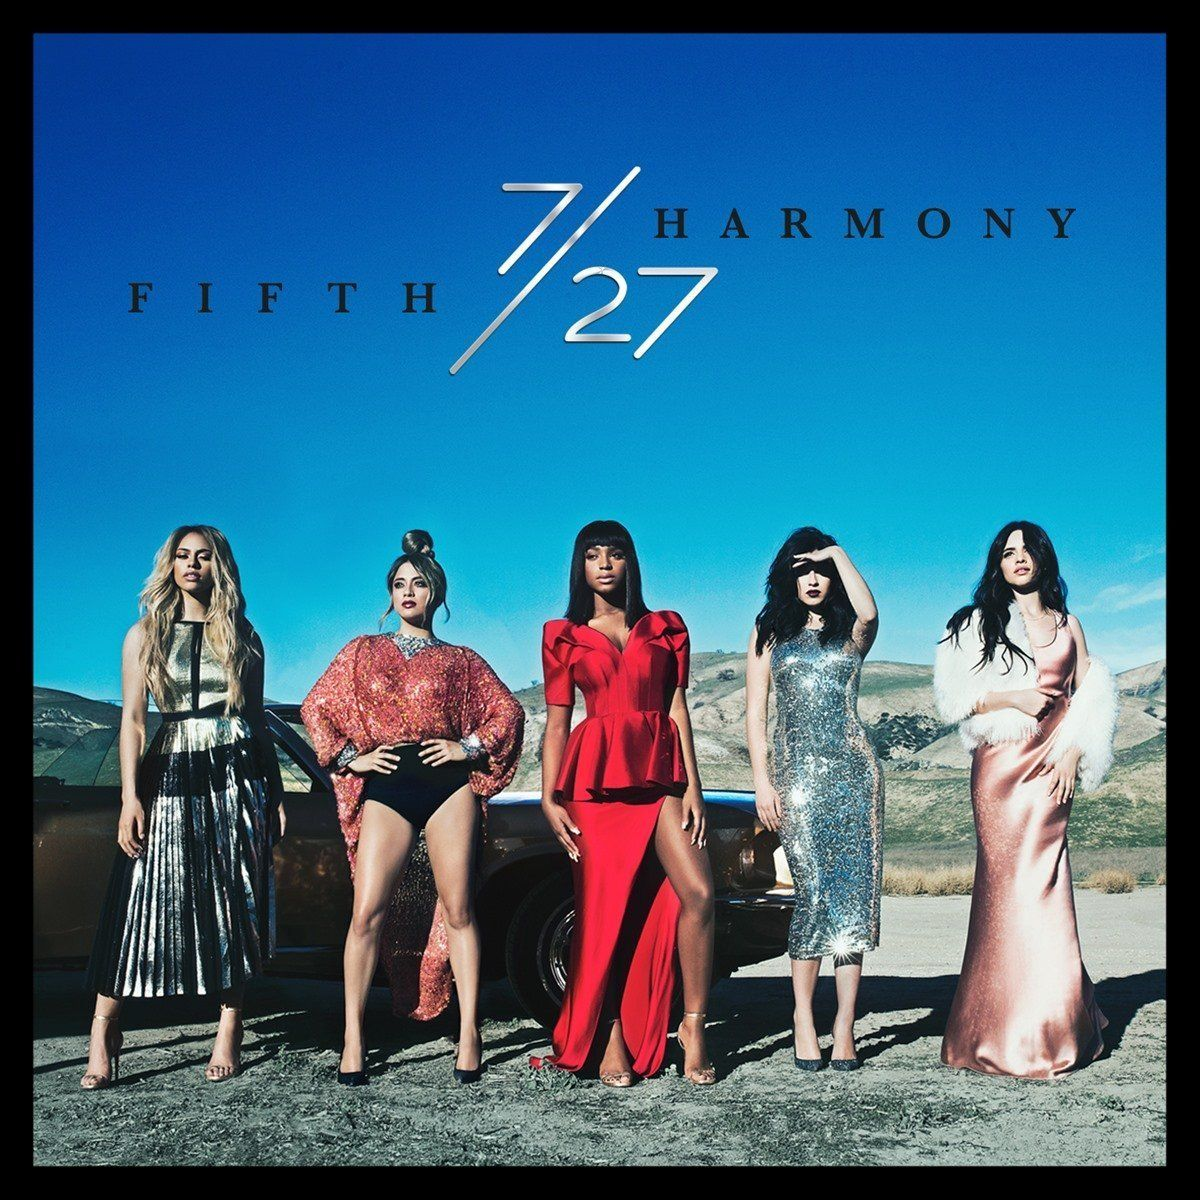 Fifth Harmony - 7 / 27 album cover